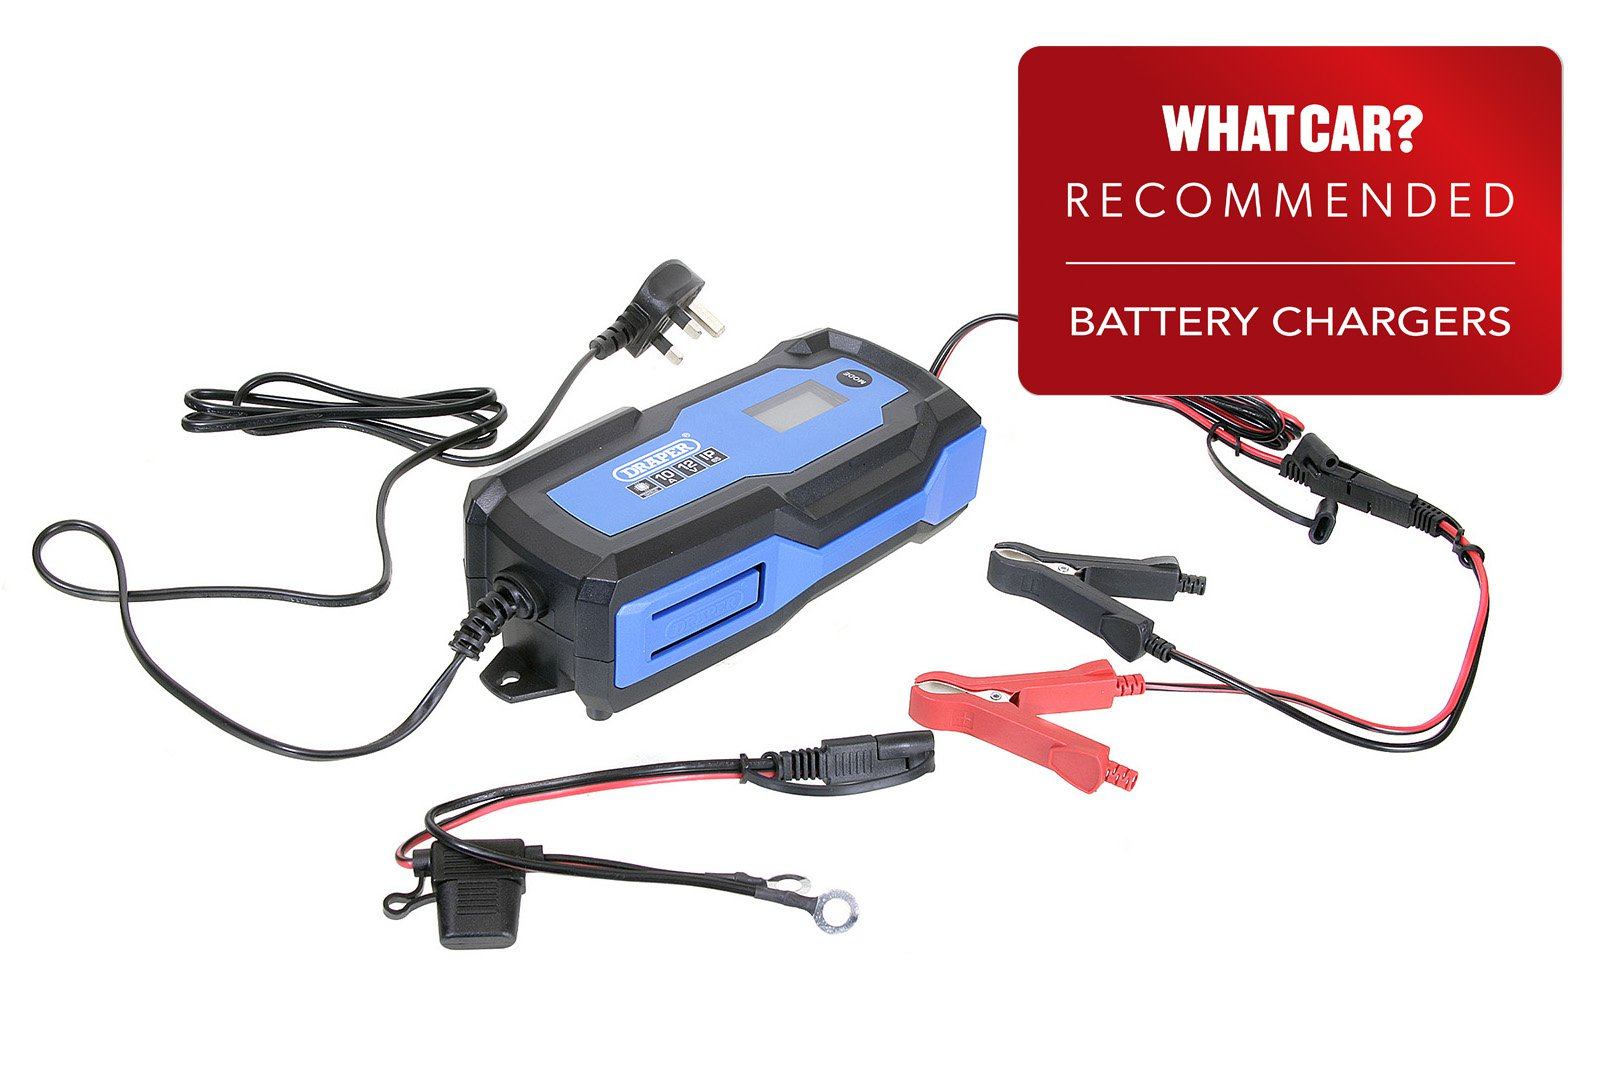 Smart Battery Chargers 2021 - Draper 53491